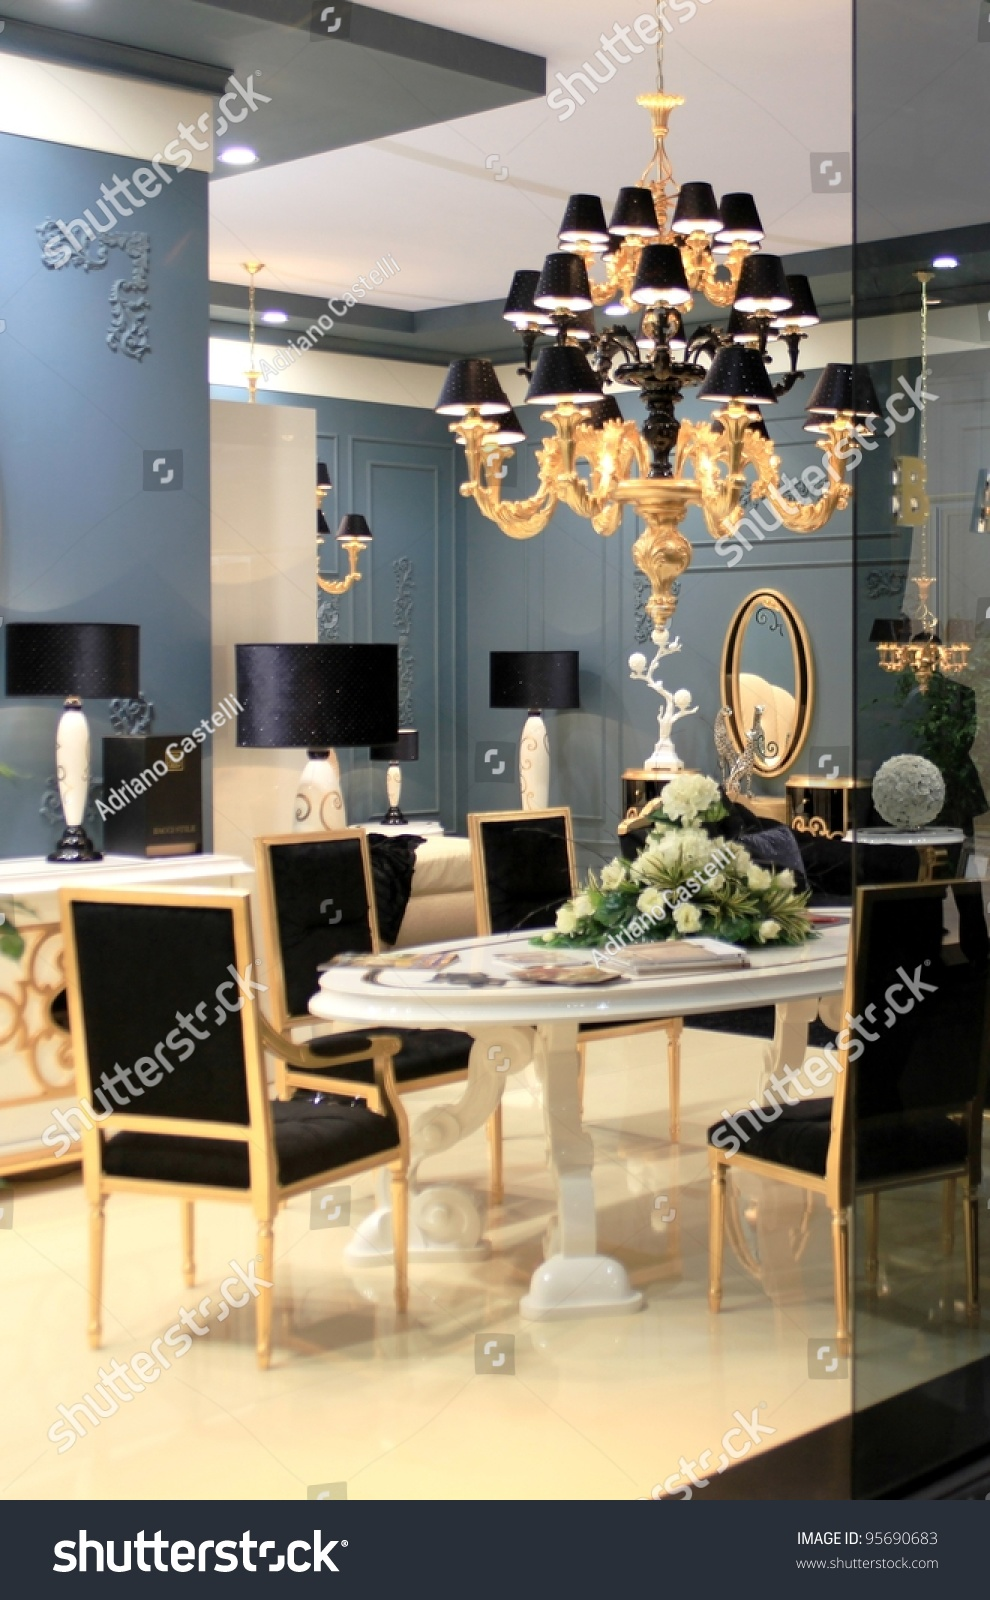 Milan april 15 interior design solutions stock photo for Interior design solutions